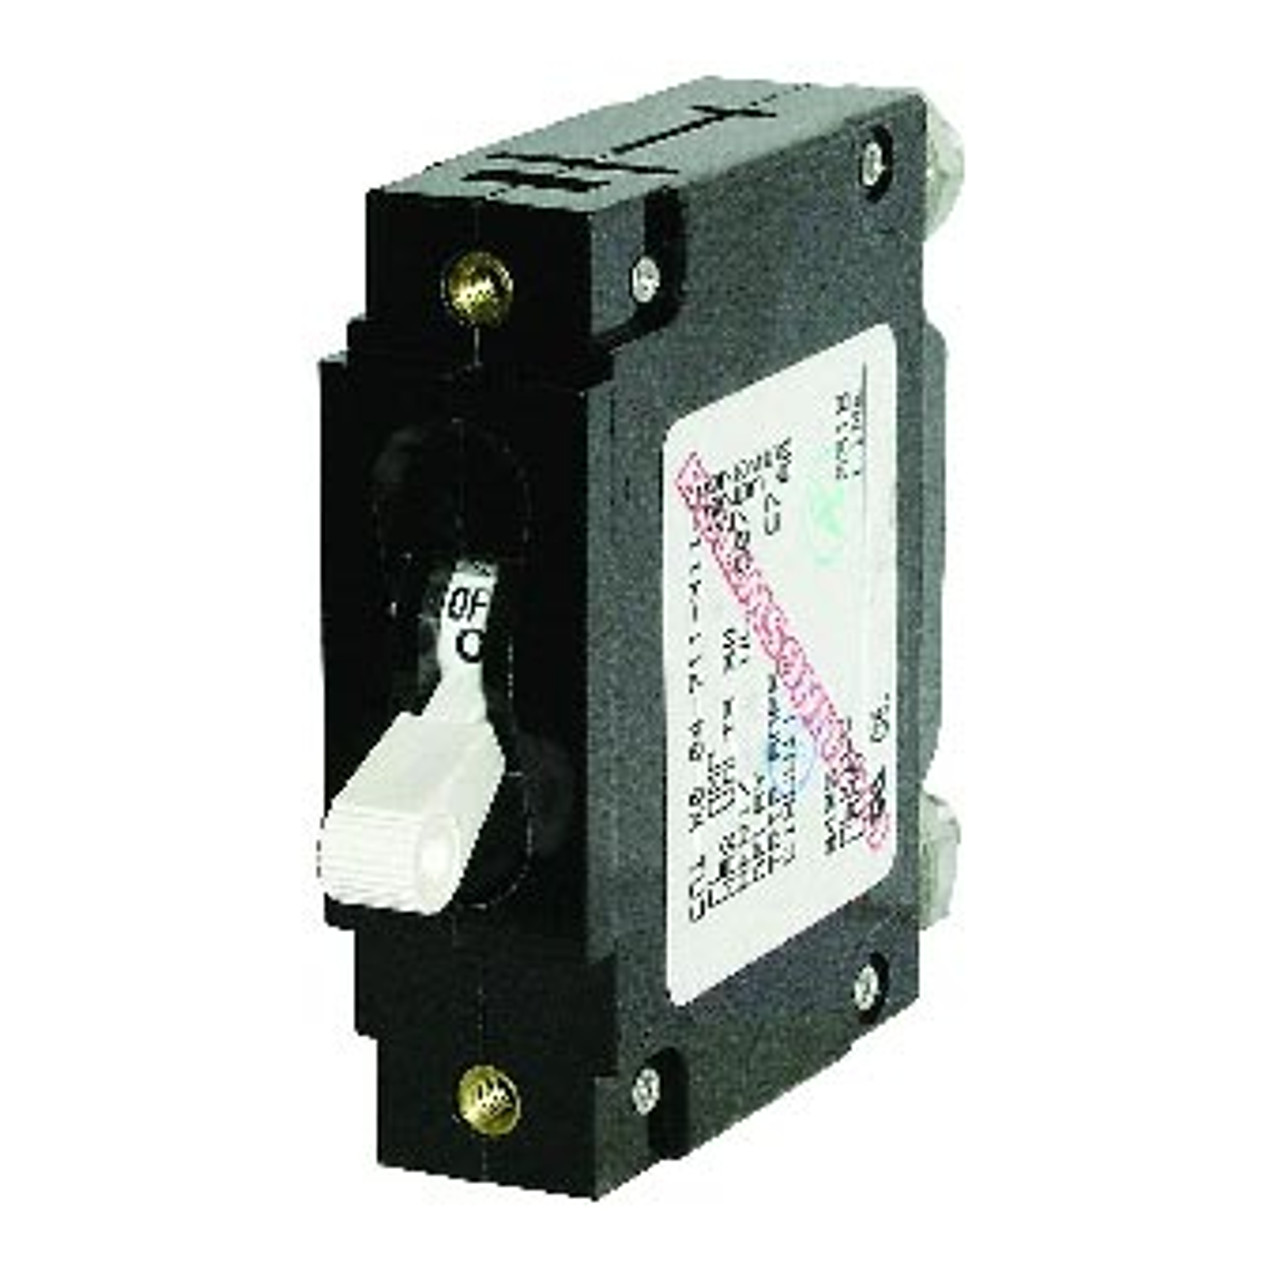 CIRCUIT BRKER WHT 100 AMP SINGLE POLE  AC/DC